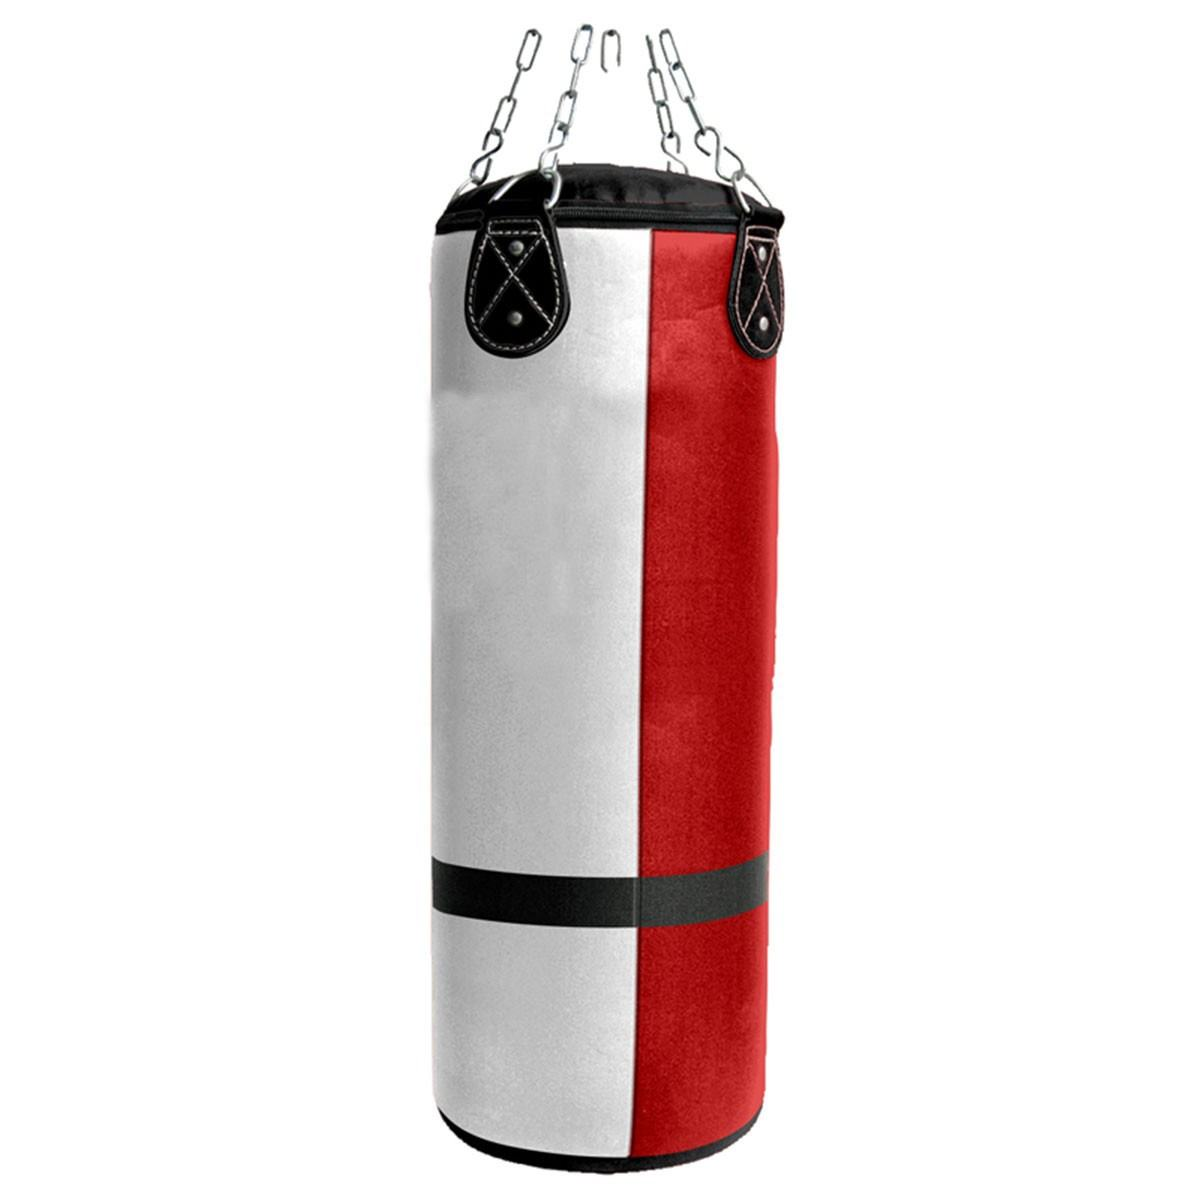 Hot Selling Heavy Punching Bags With Low Price Popular Product Top Quality Punching Bags